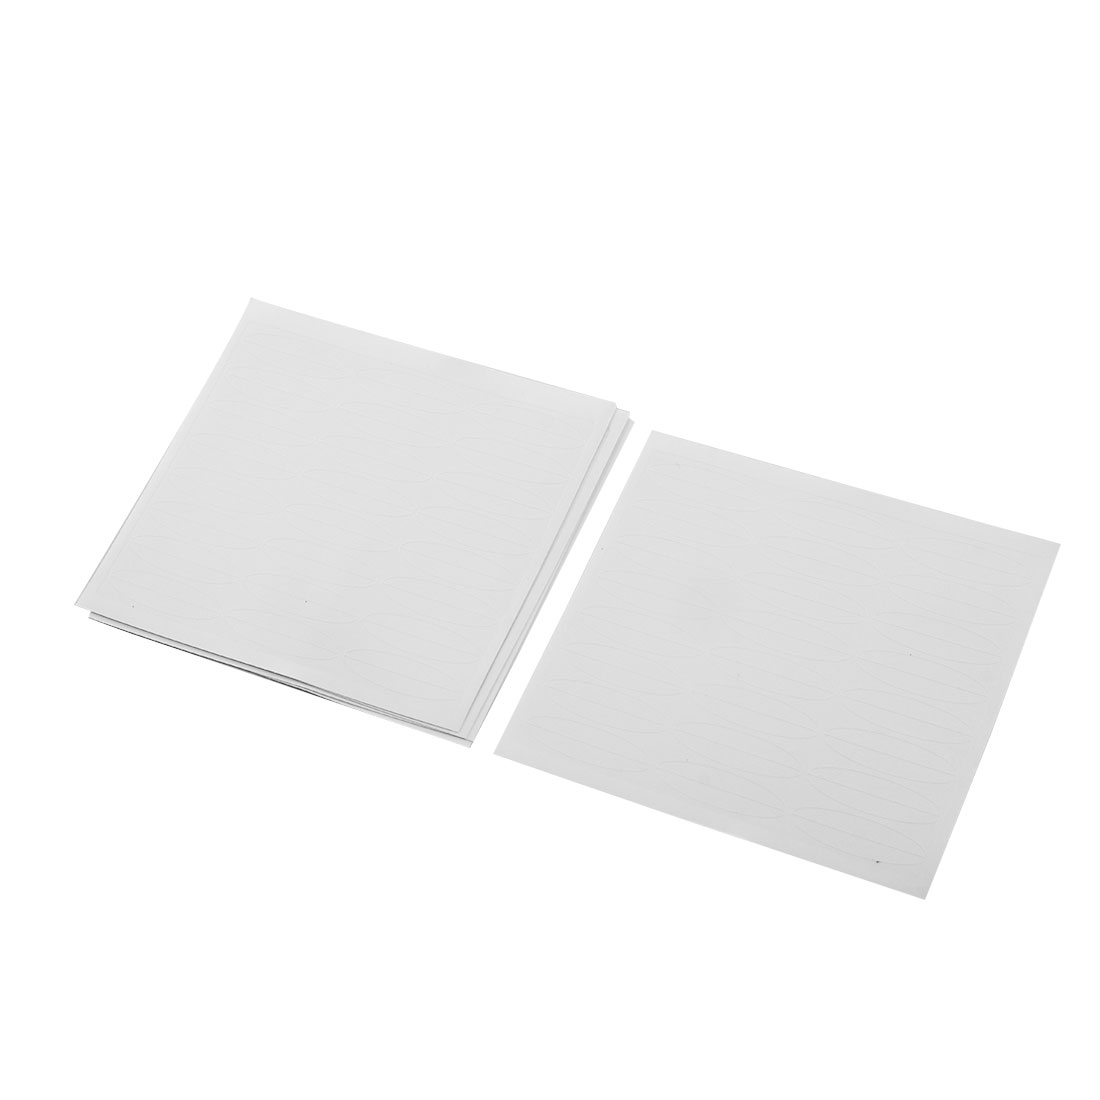 120 Pairs Plastic Clear White Wide Double Eyelid Adhesive Tapes Stickers